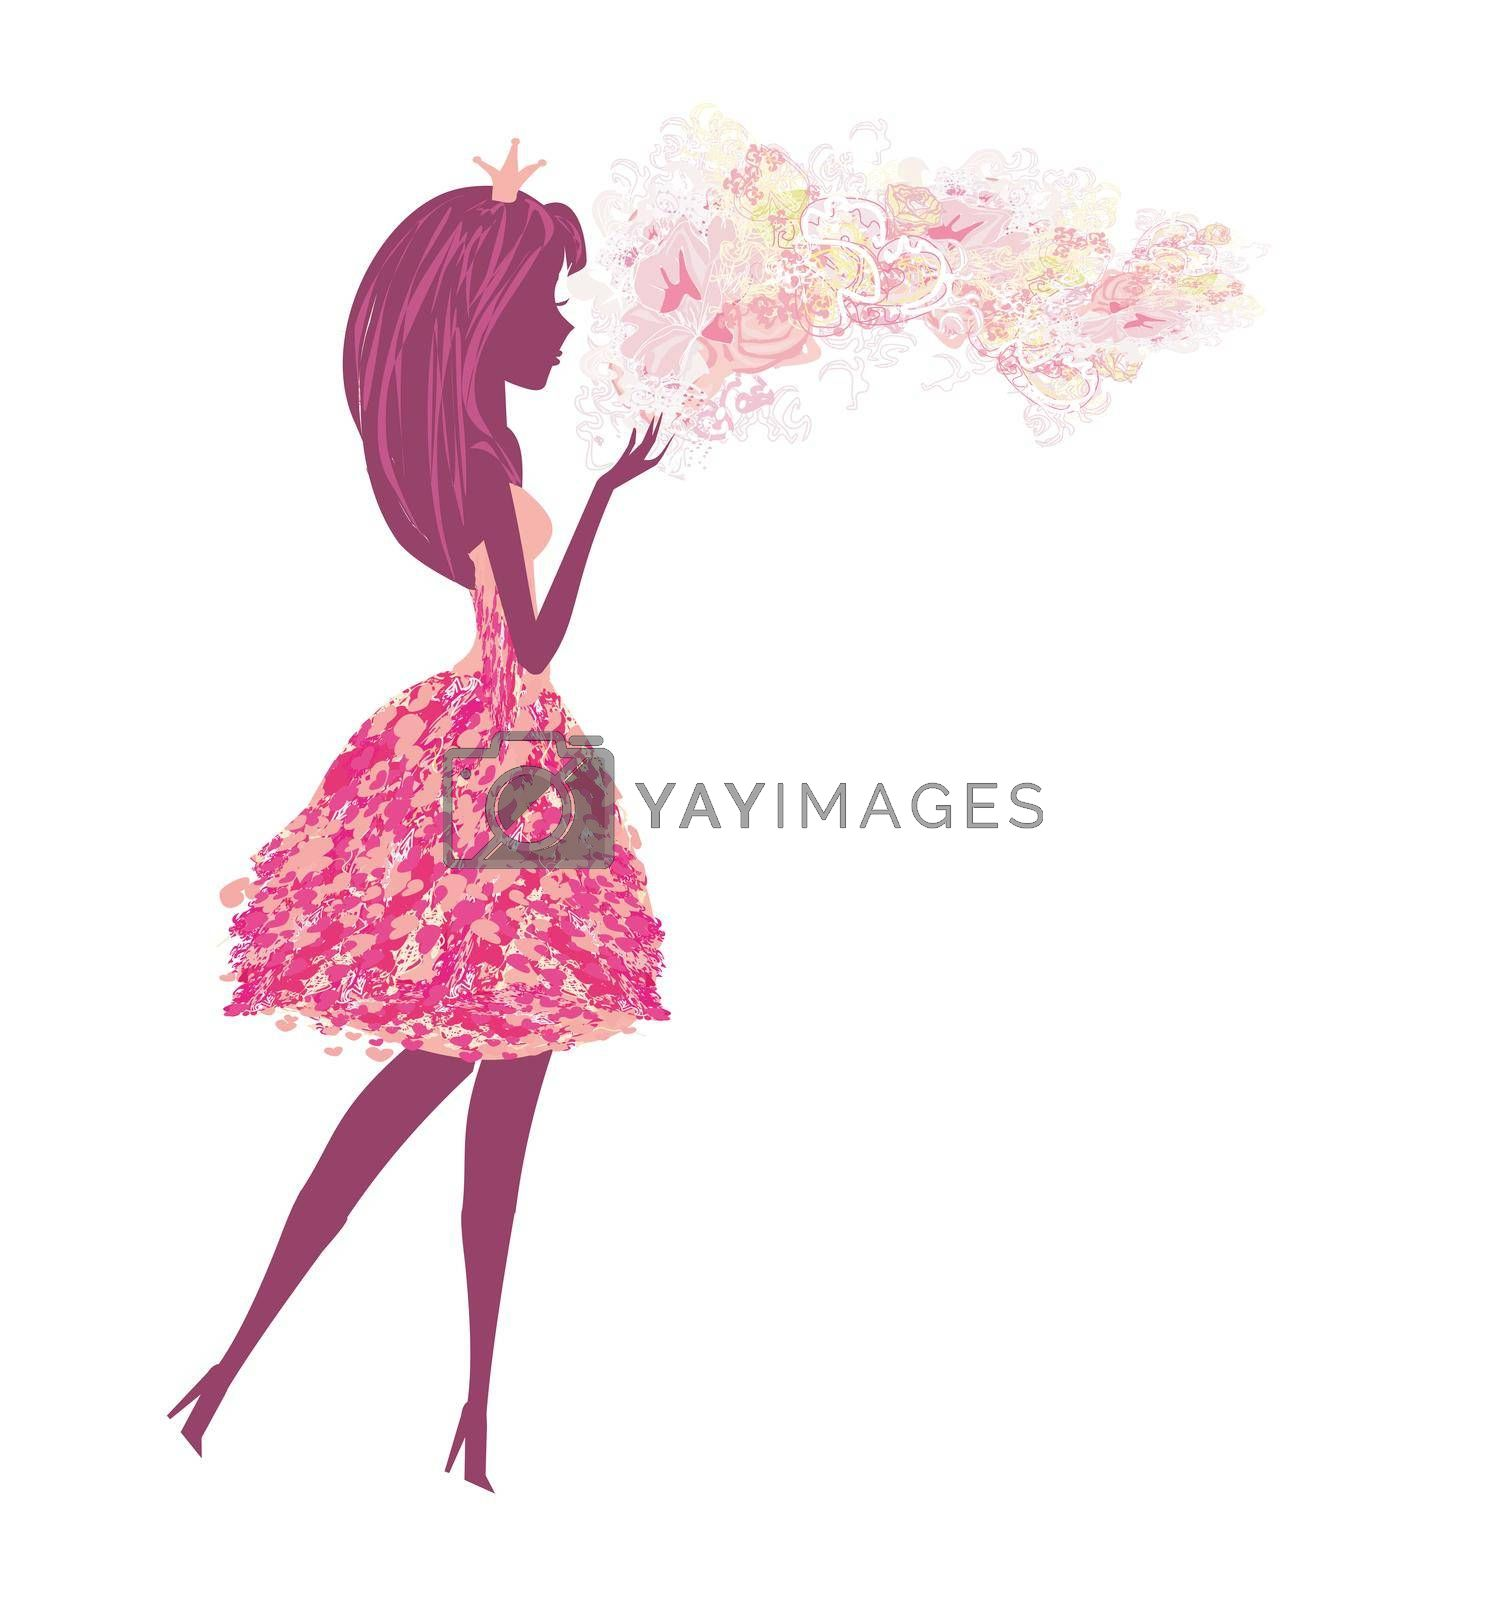 Royalty free image of isolated silhouette of a beautiful fairy by JackyBrown